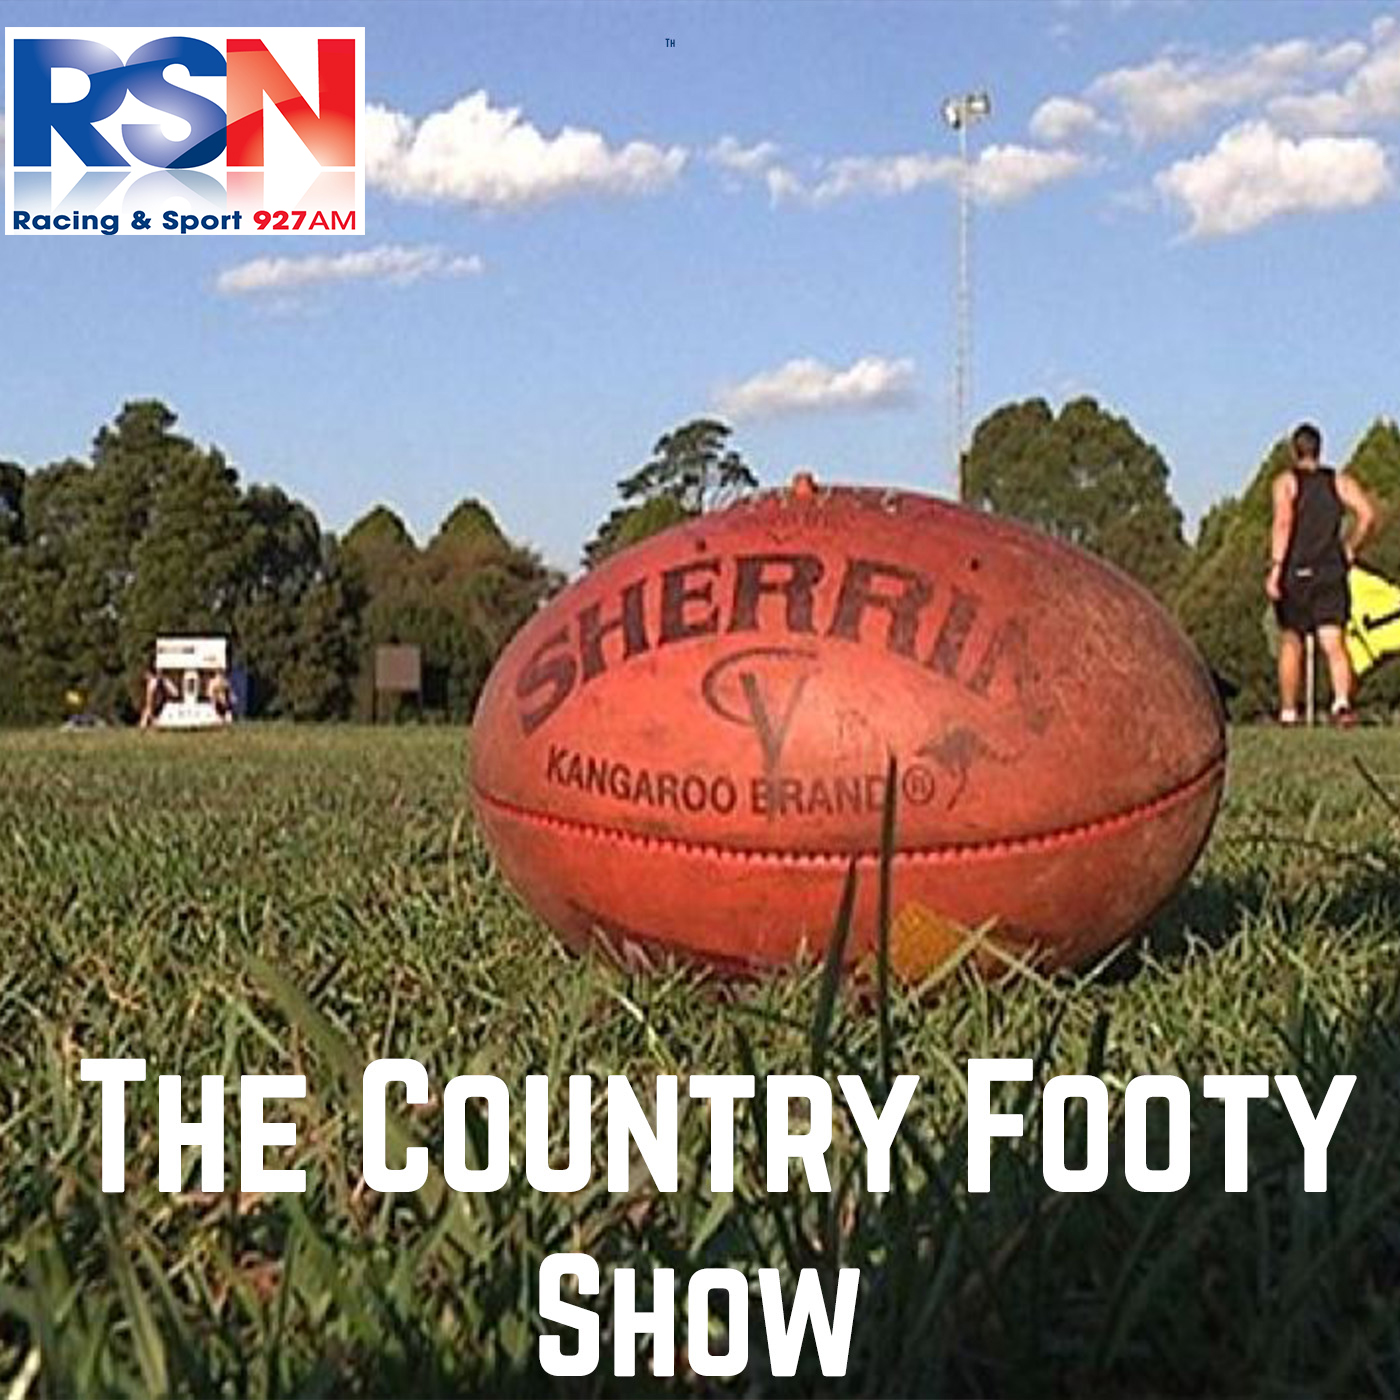 The Country Footy Show with Paul Daffy - September 23rd 2019